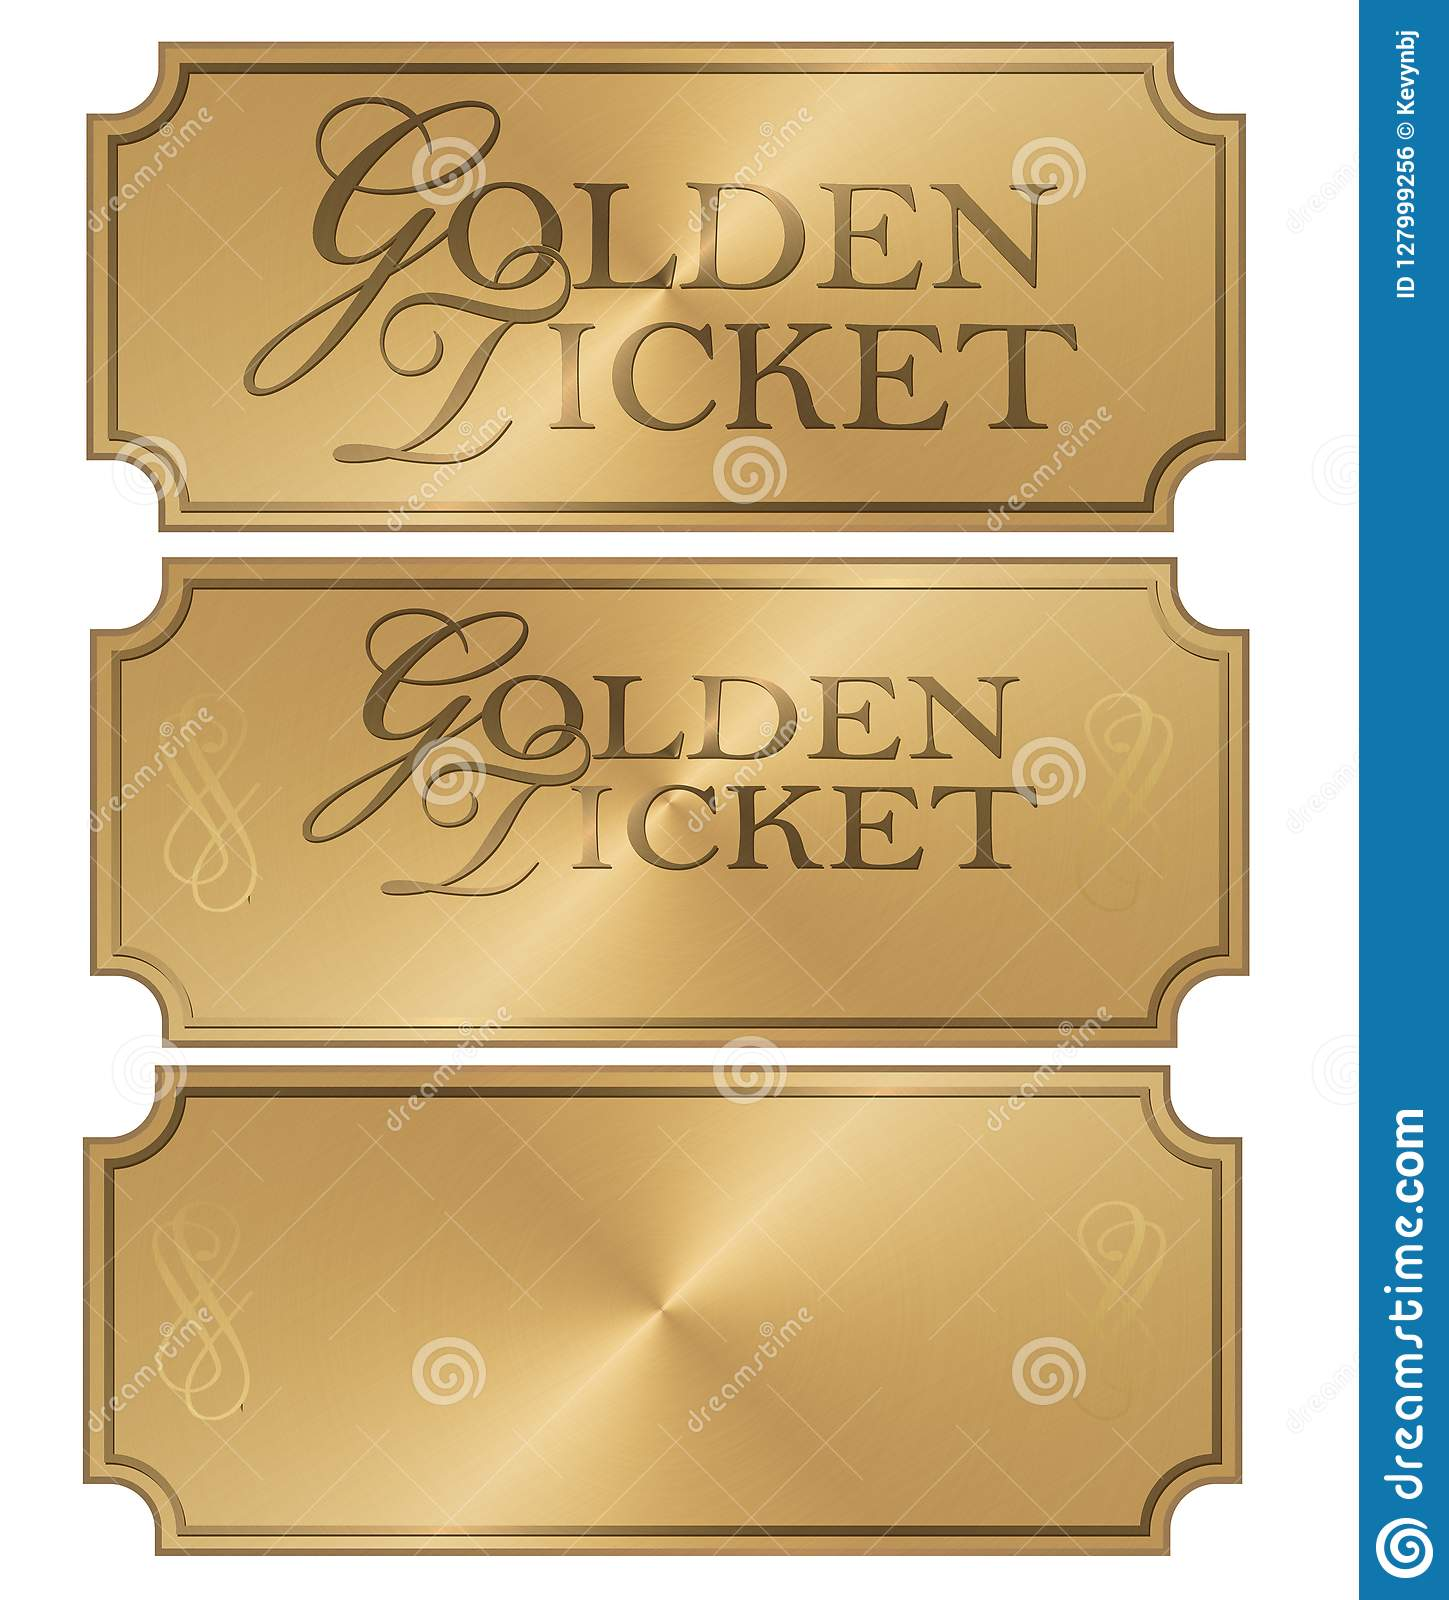 Golden Ticket Art Logo Stub Coupon Template Elegant Blank Scroll Award Prize Pass Shiny Gold